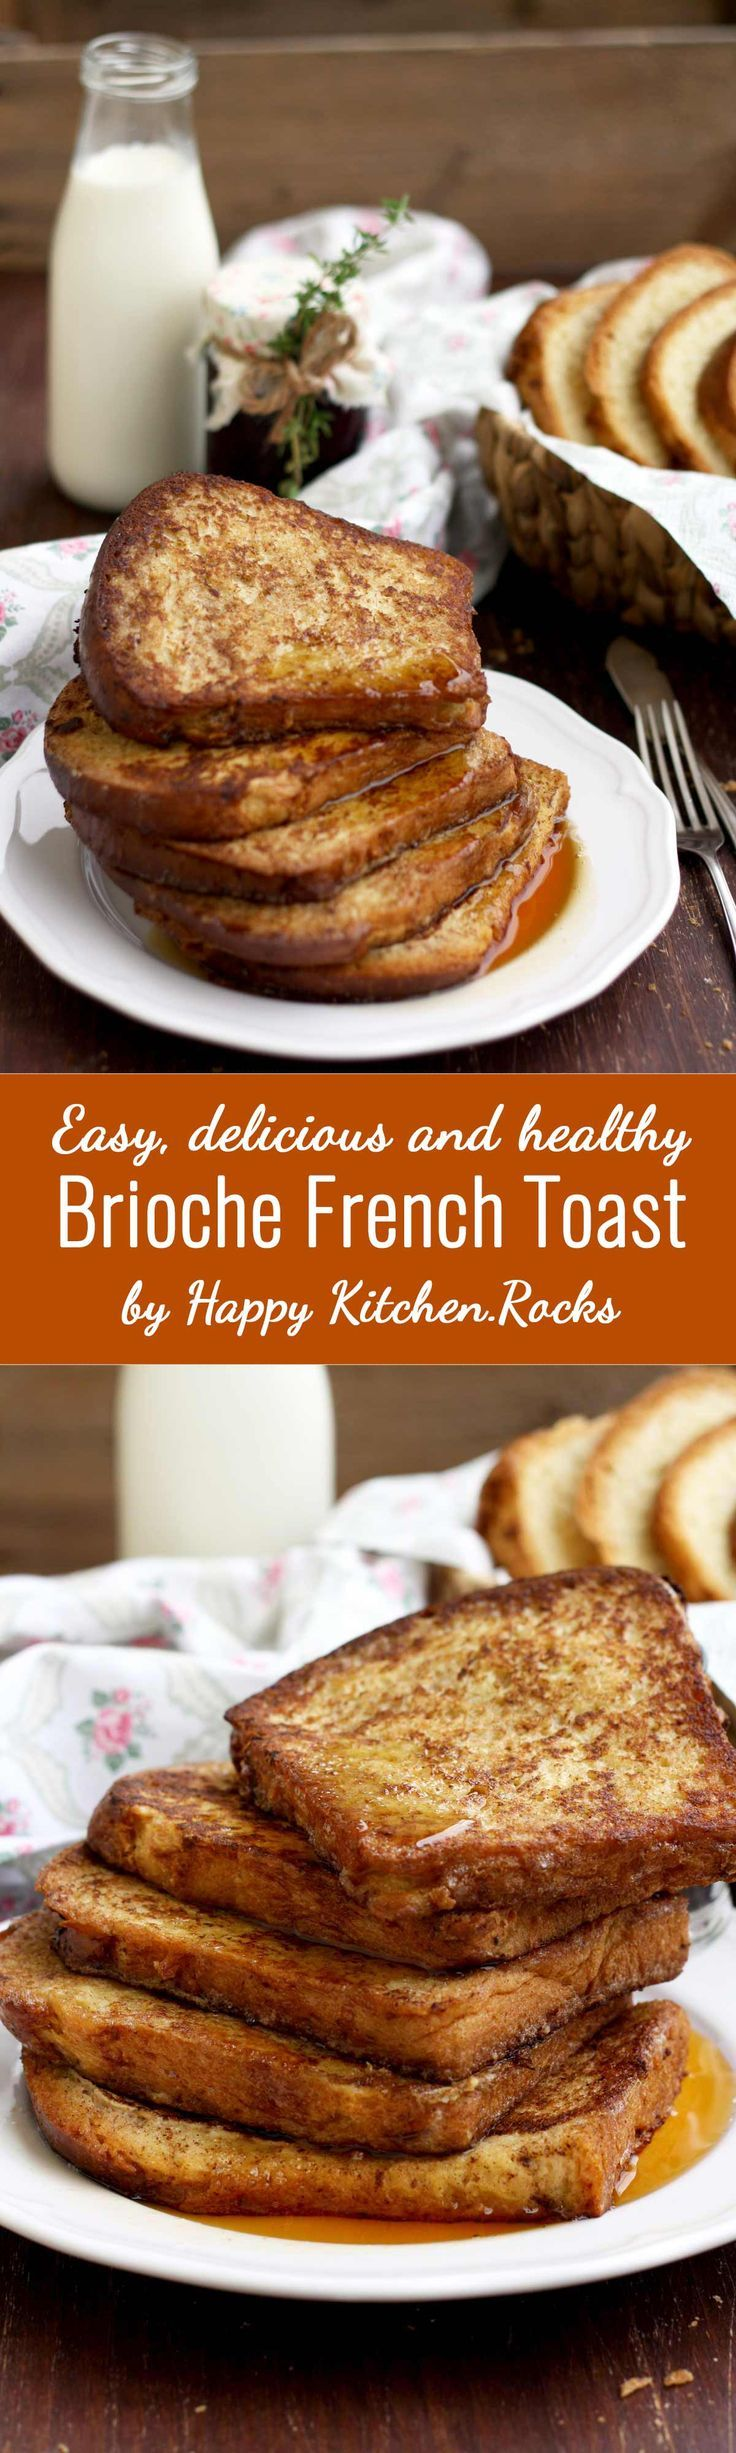 This healthy brioche French toast recipe is super easy and quick to make. Delicious and luscious breakfast or brunch idea for holidays or lazy Sundays! Make it for your Christmas brunch and impress everyone!